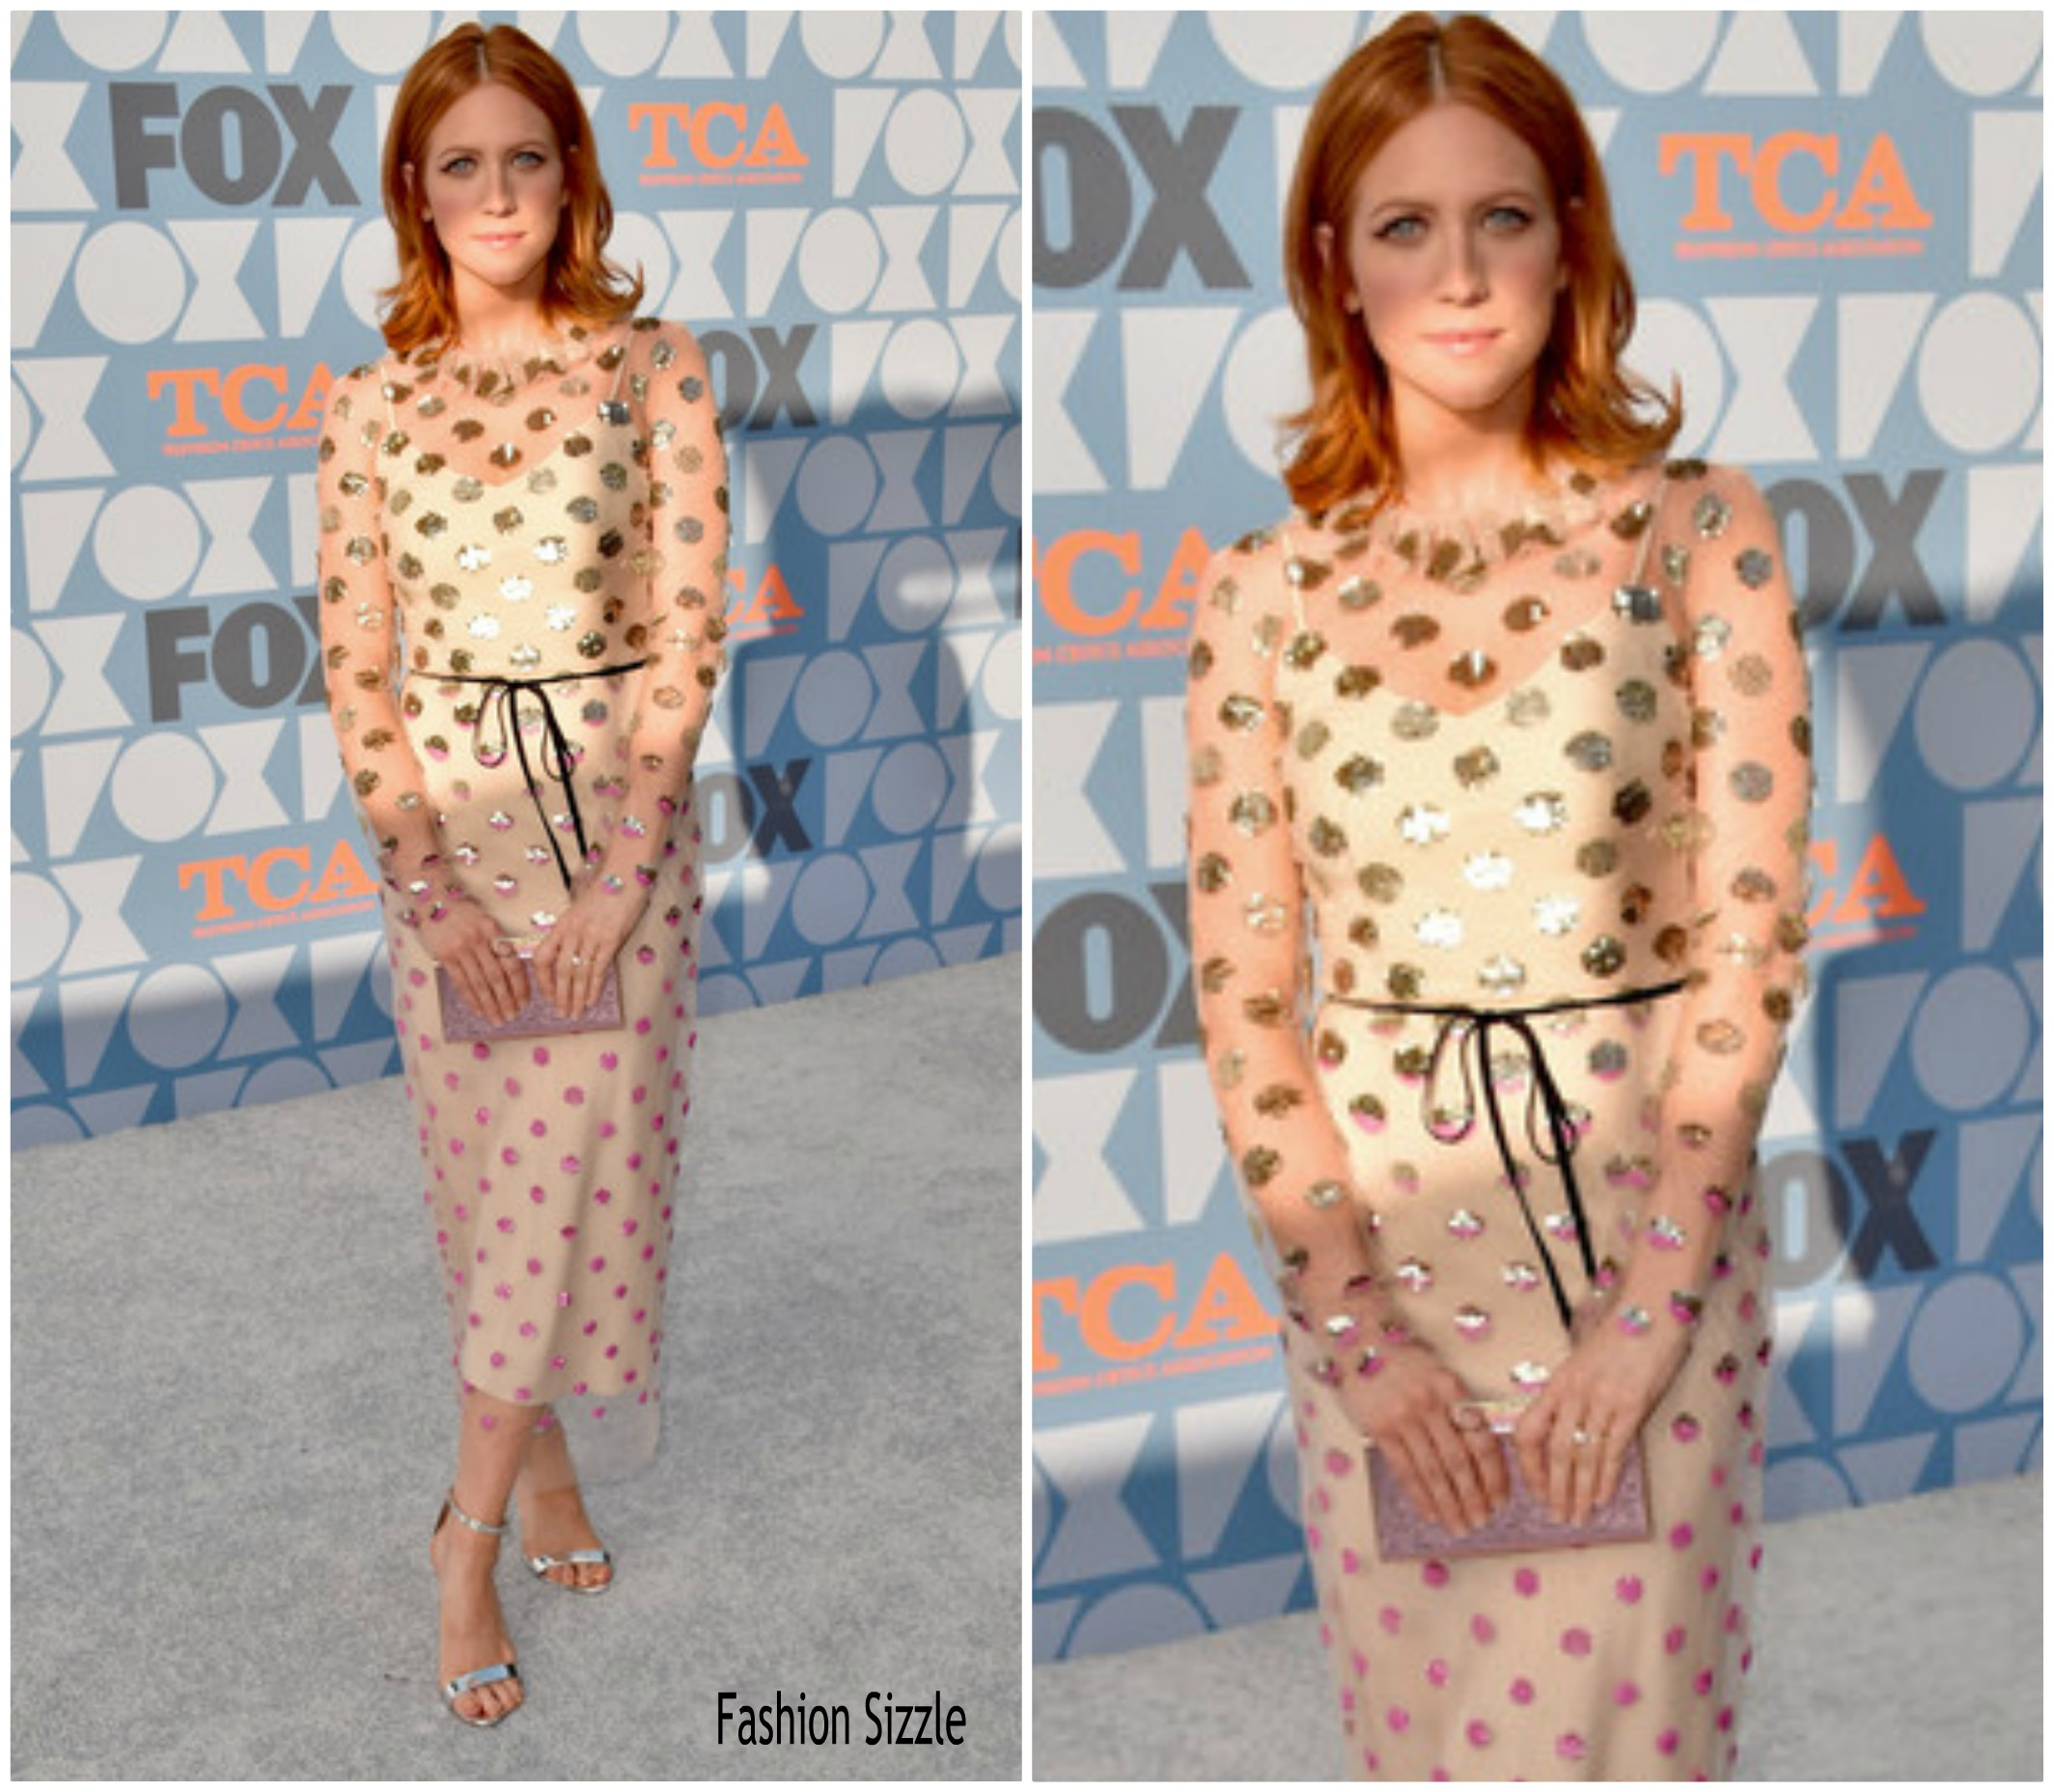 brittany-snow-in-monique-lhuillier-foxs-summer-tca-2019-all-star-party